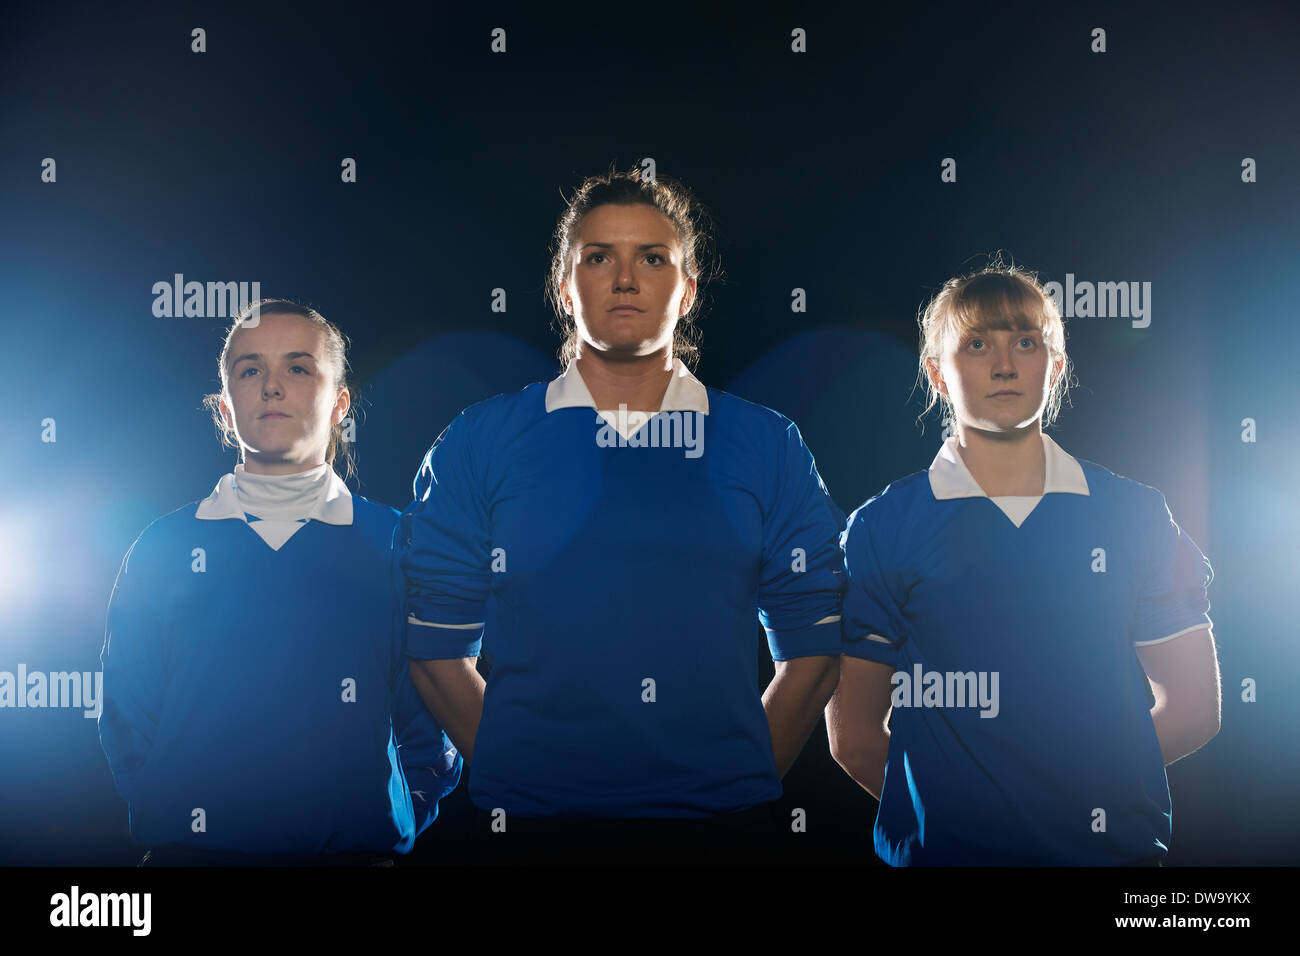 Portrait of female soccer players - Stock Image